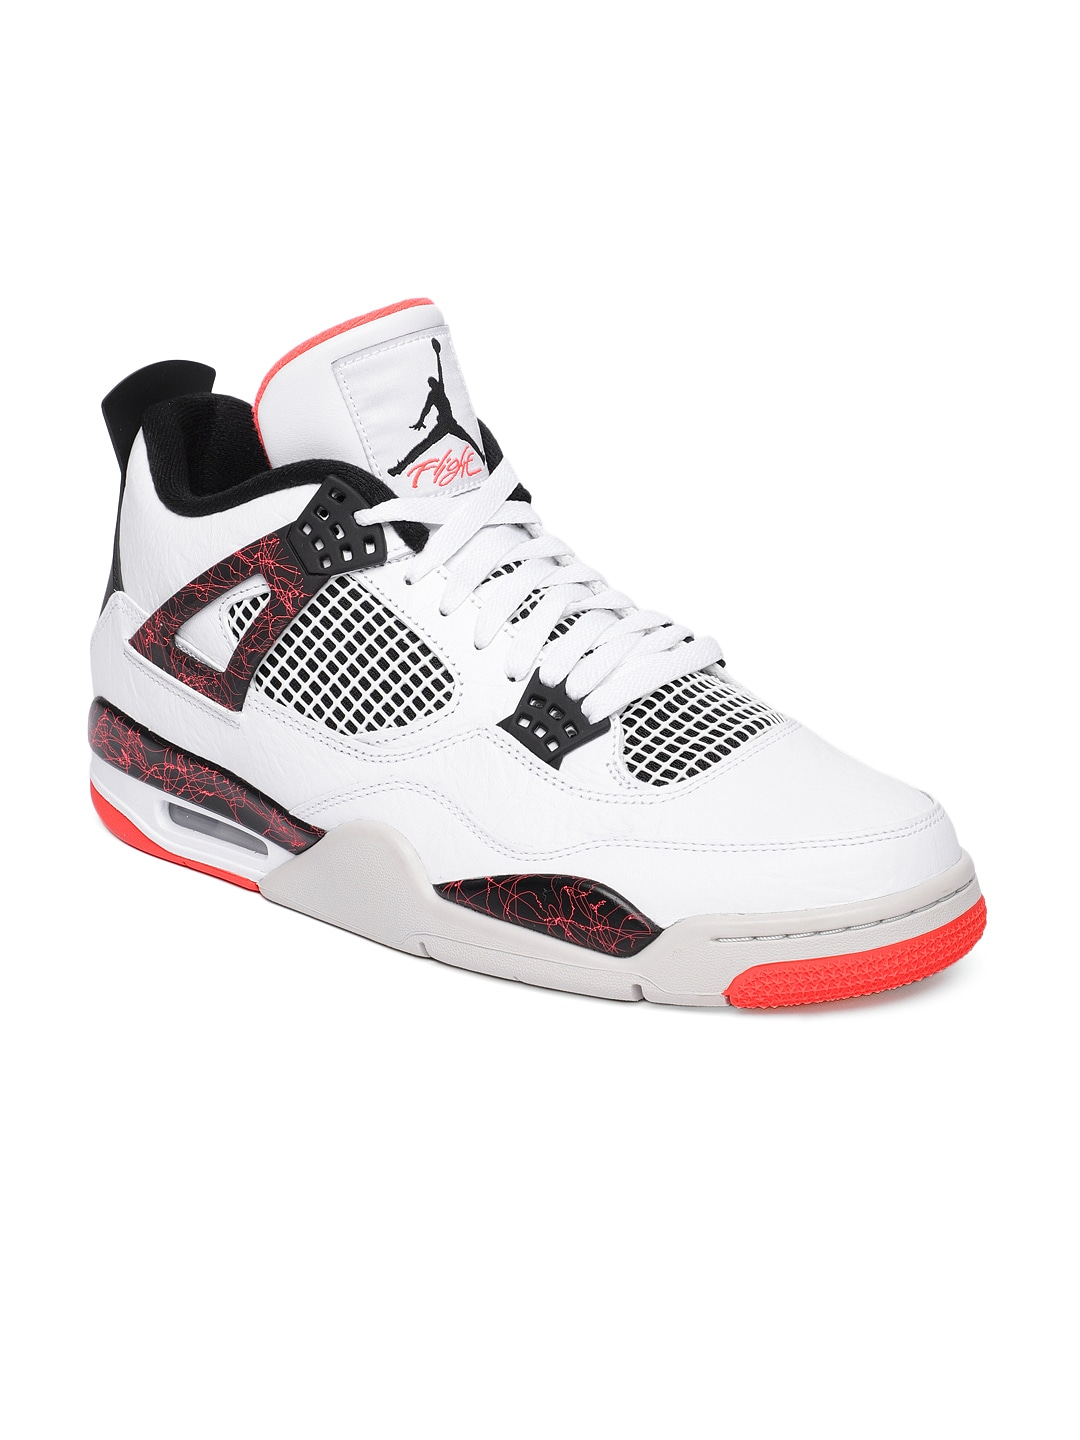 new arrival fa779 6c6d7 Jordan Shoes - Buy Jordan Shoes For Men Online in India   Myntra